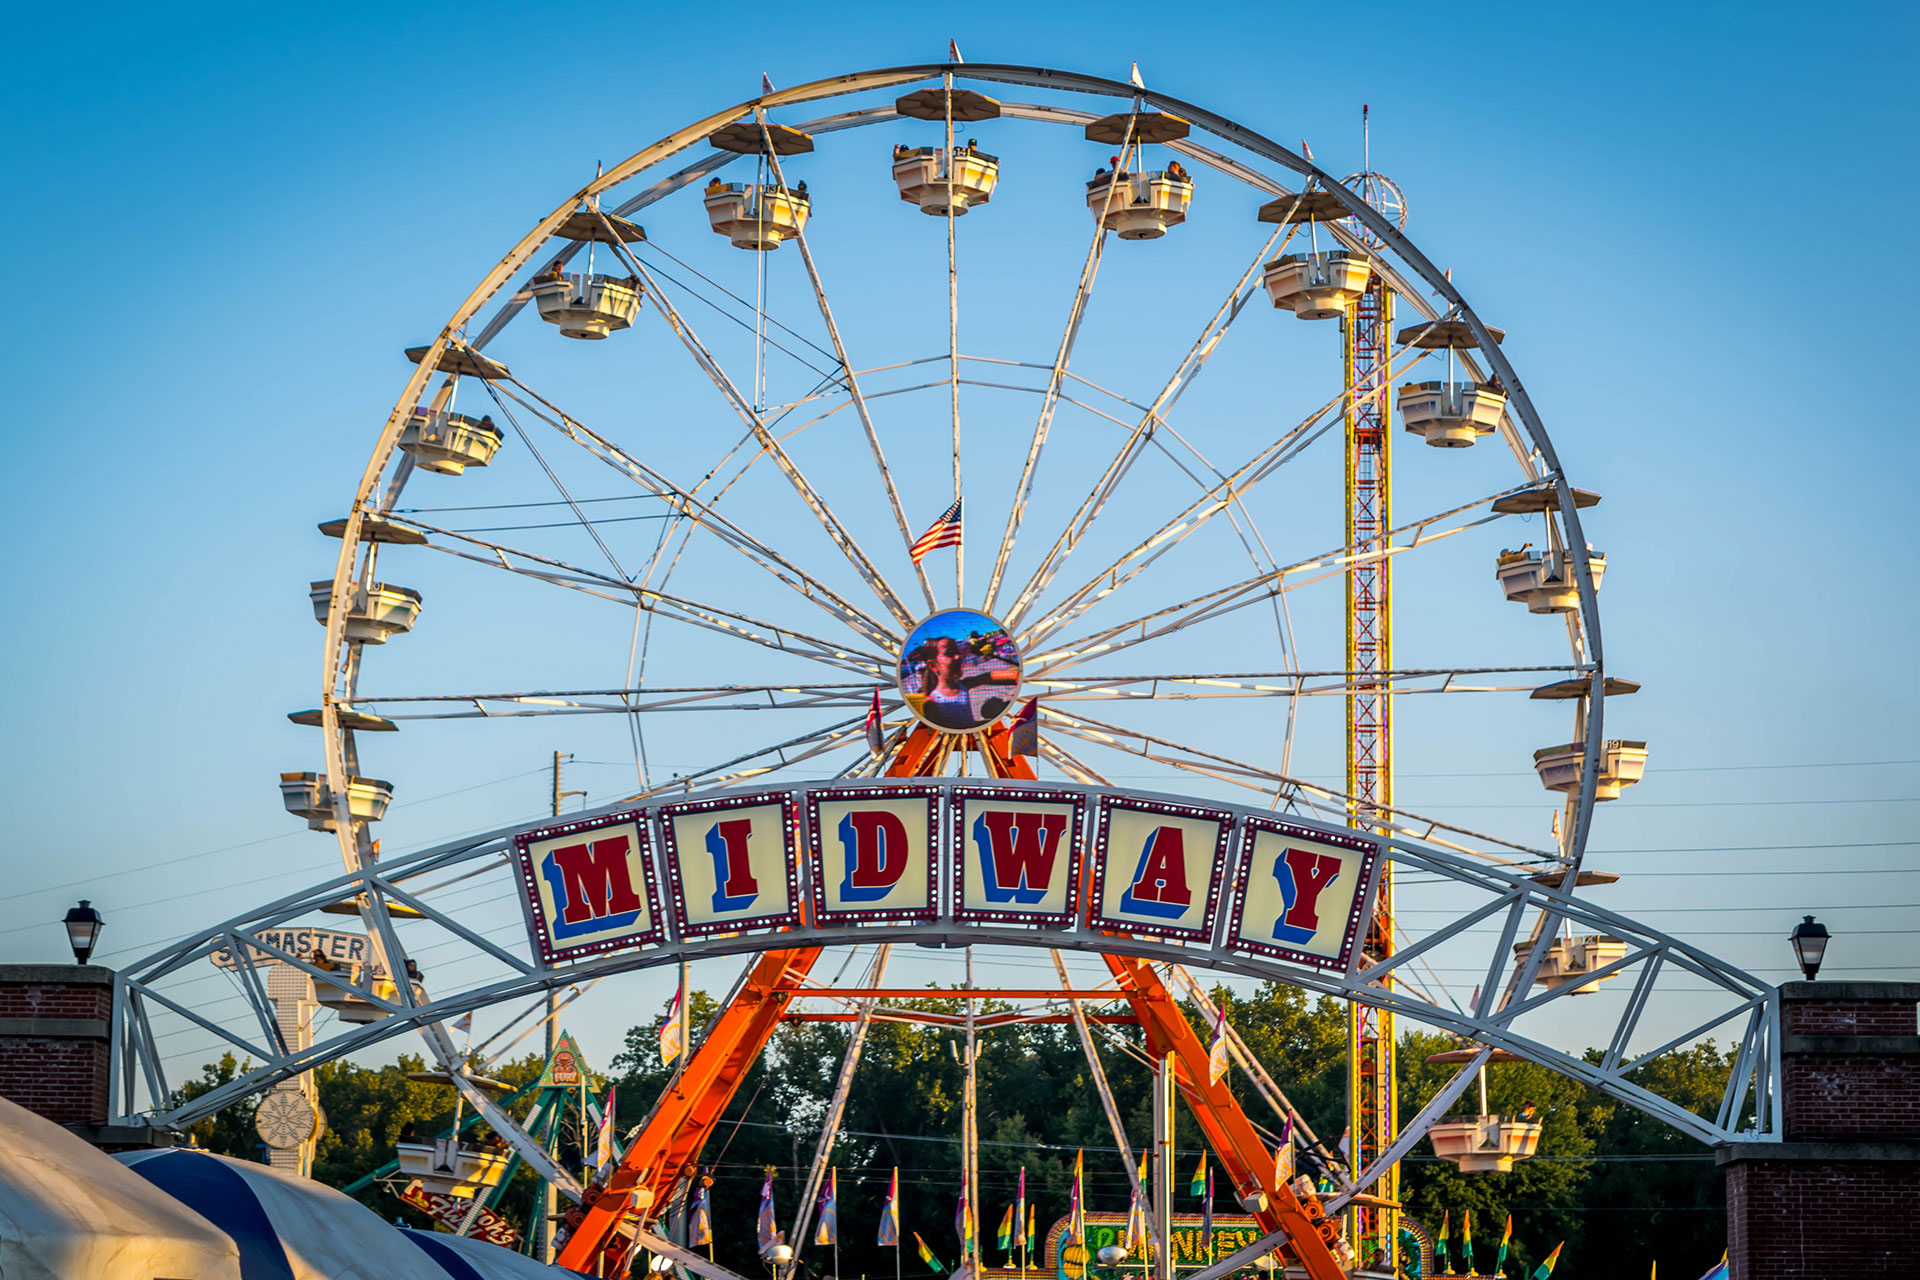 Big E State Fair; Courtesy of By Keith J Finks